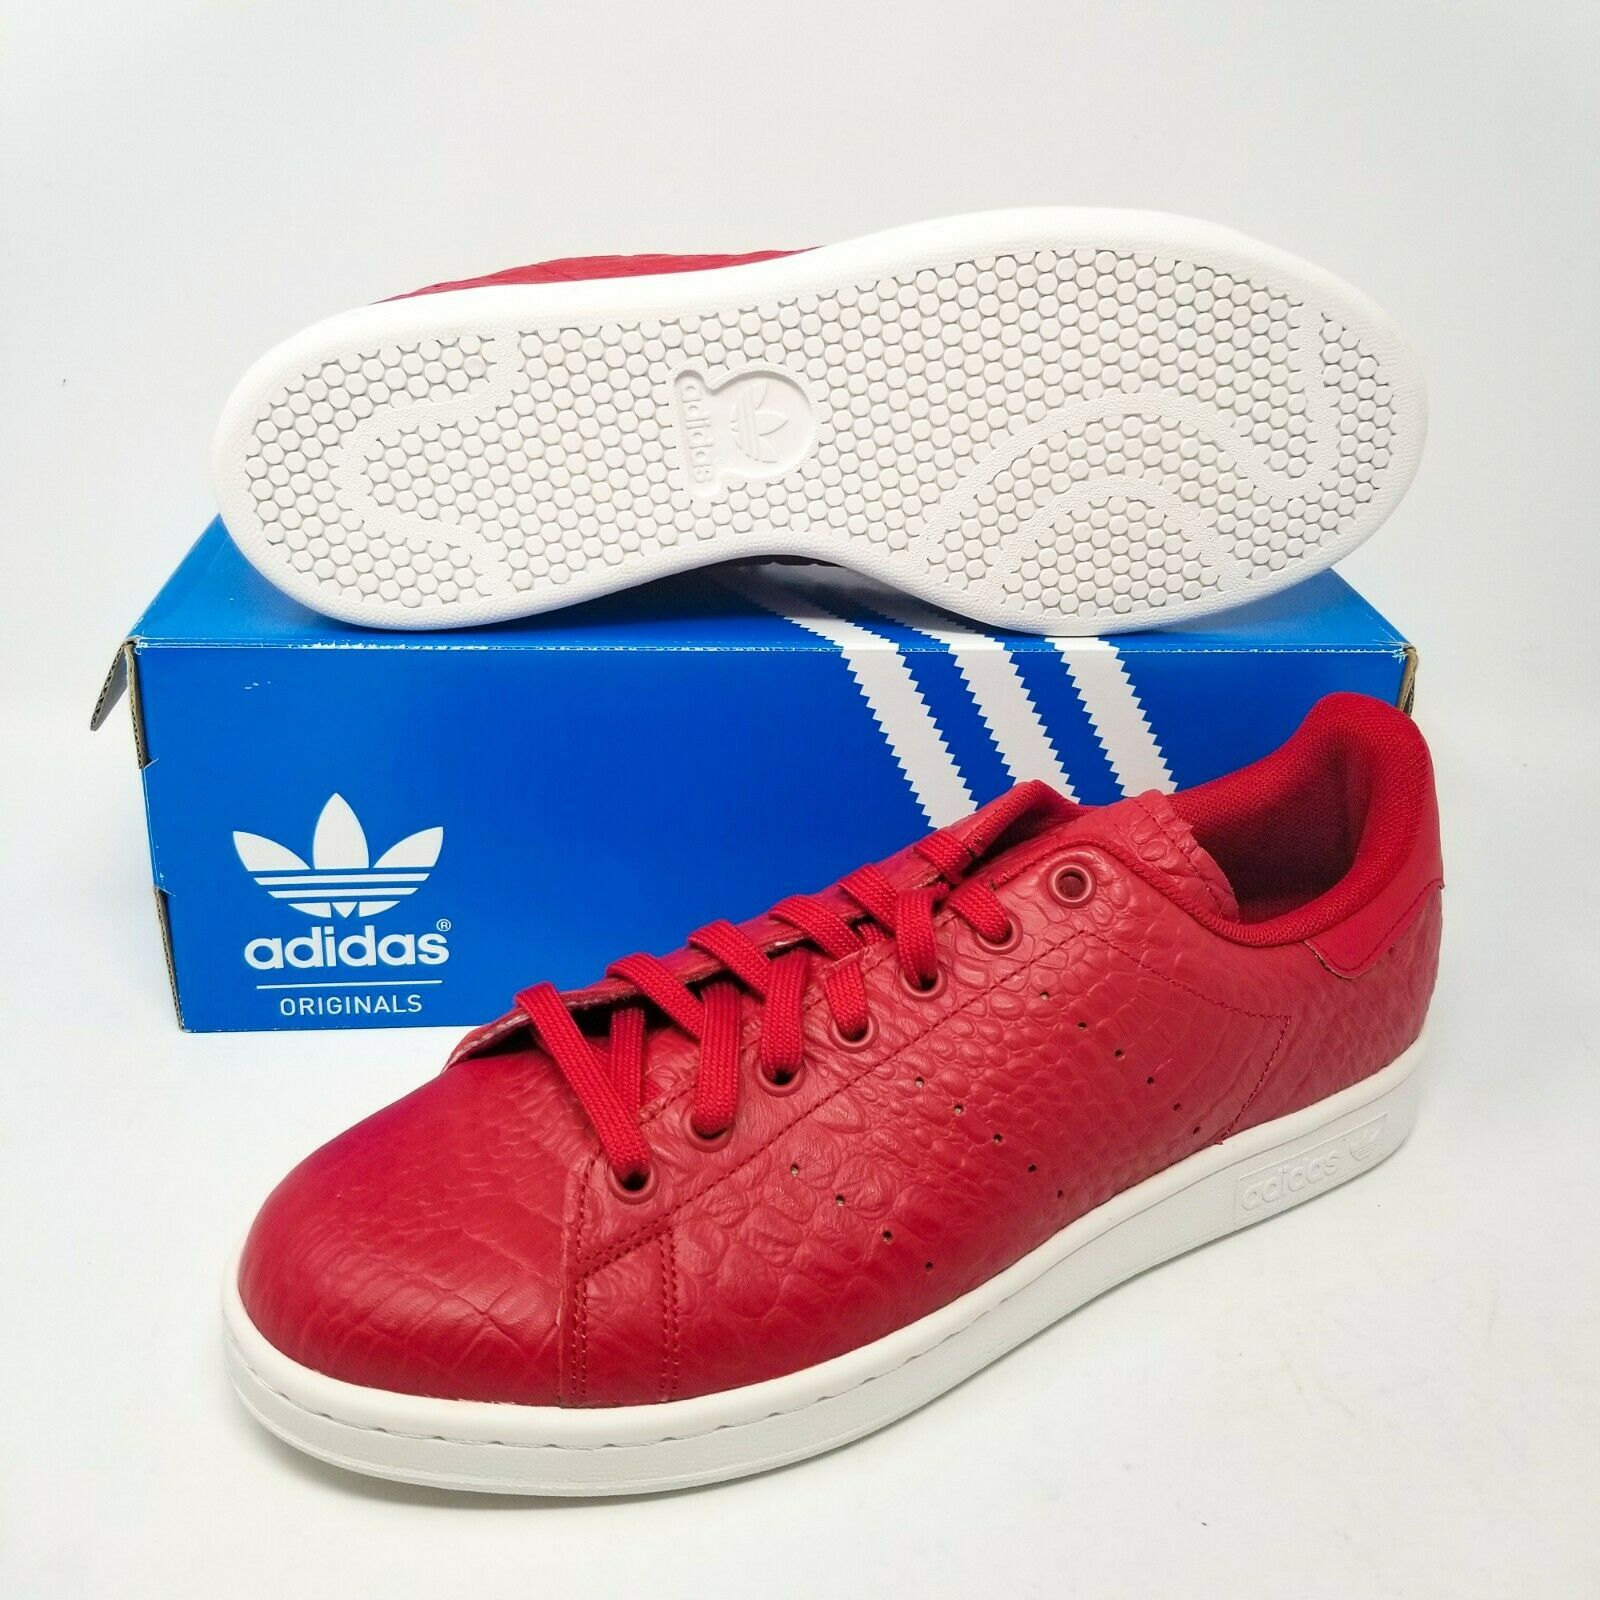 Primary image for adidas Stan Smith Power Red Snakeskin White Tennis Shoes AQ2729  sz 10 UK 9.5